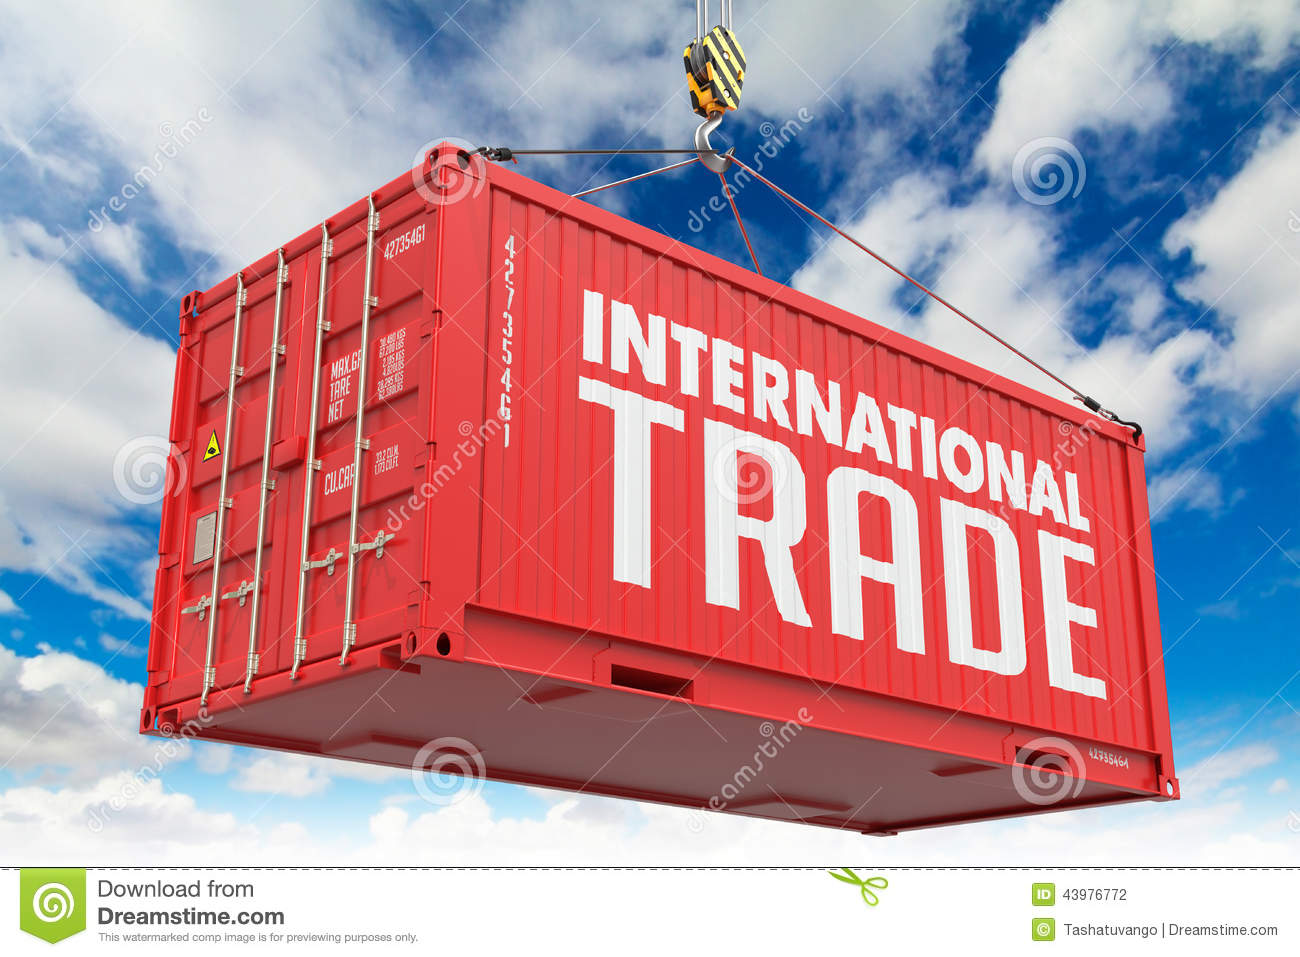 International Trade On Red Container. Stock Photo - Image: 43976772